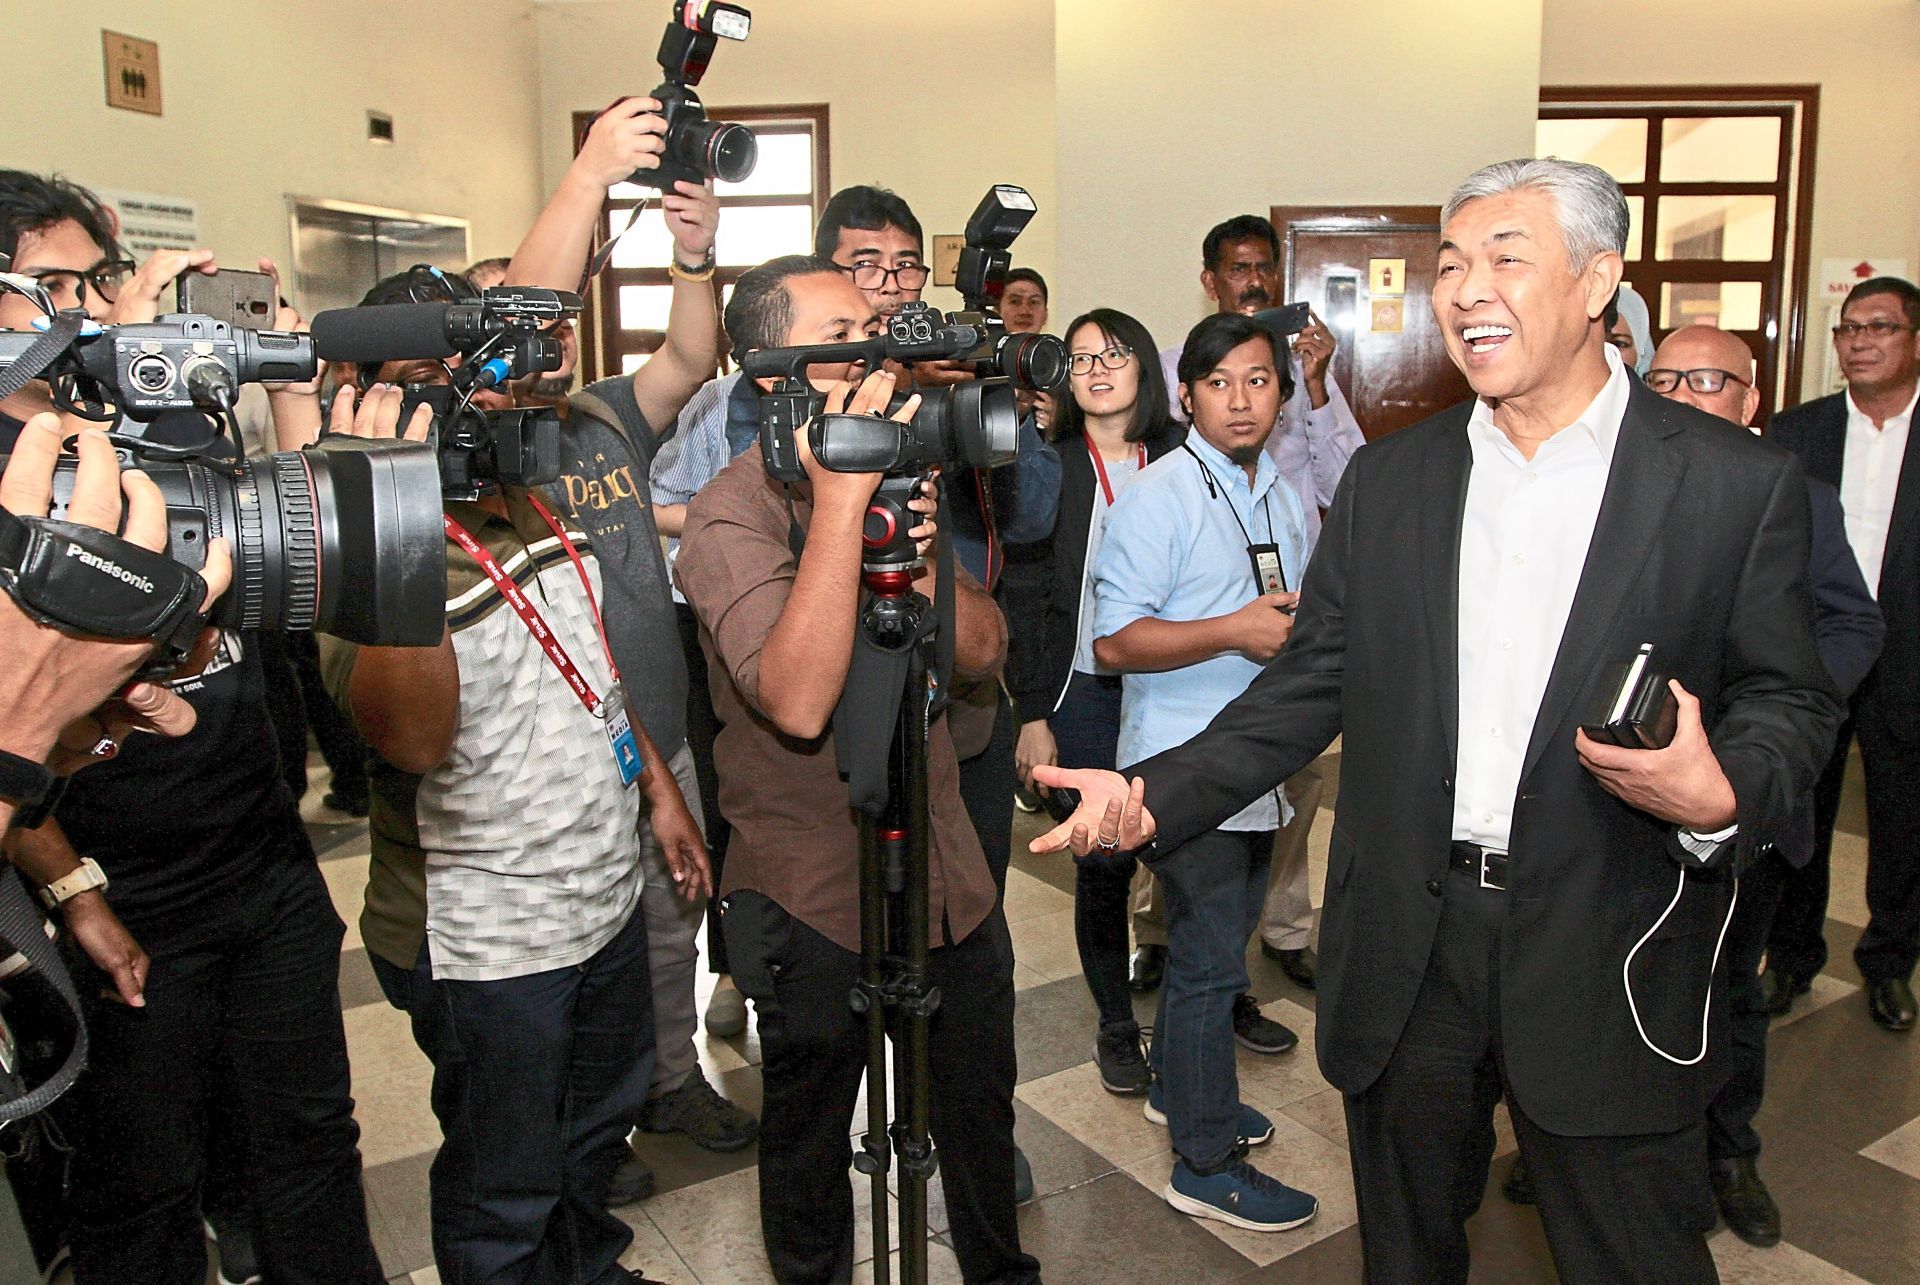 Jovial talk: Ahmad Zahid chatting with the media during a break at the Kuala Lumpur High Court.